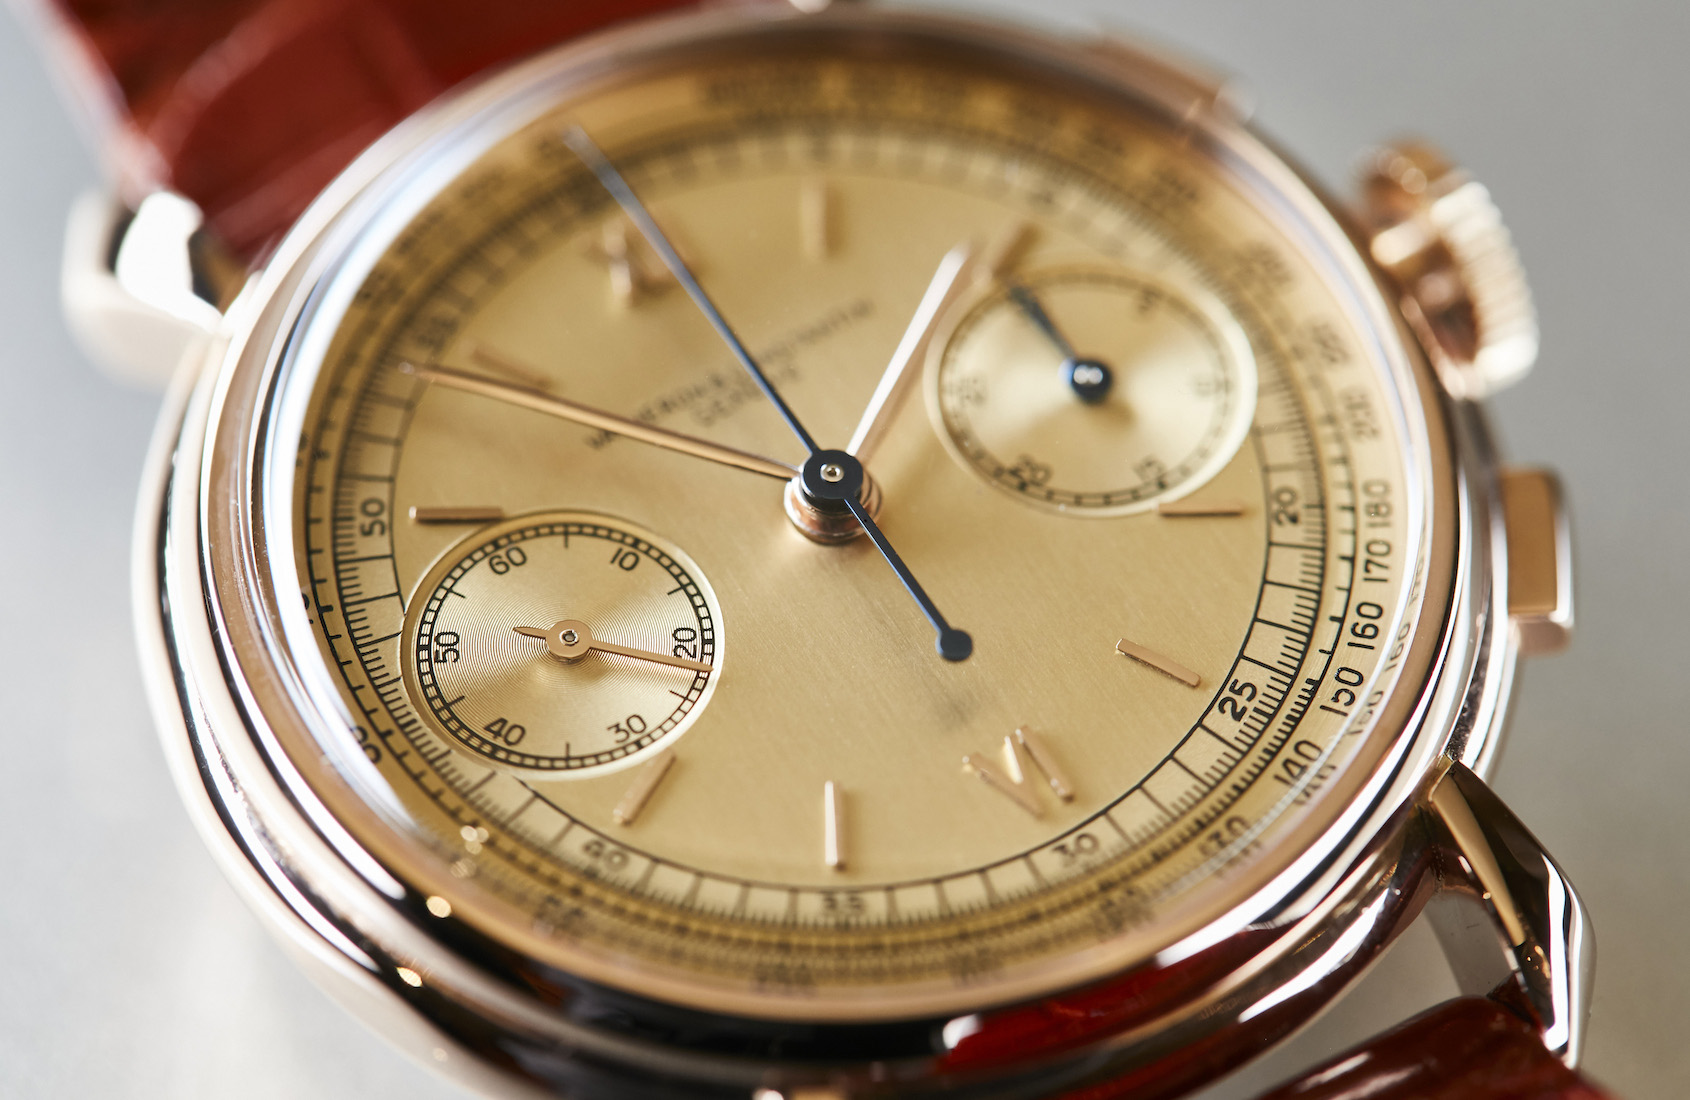 8 incredible vintage watches from Vacheron Constantin Les Collectionneurs